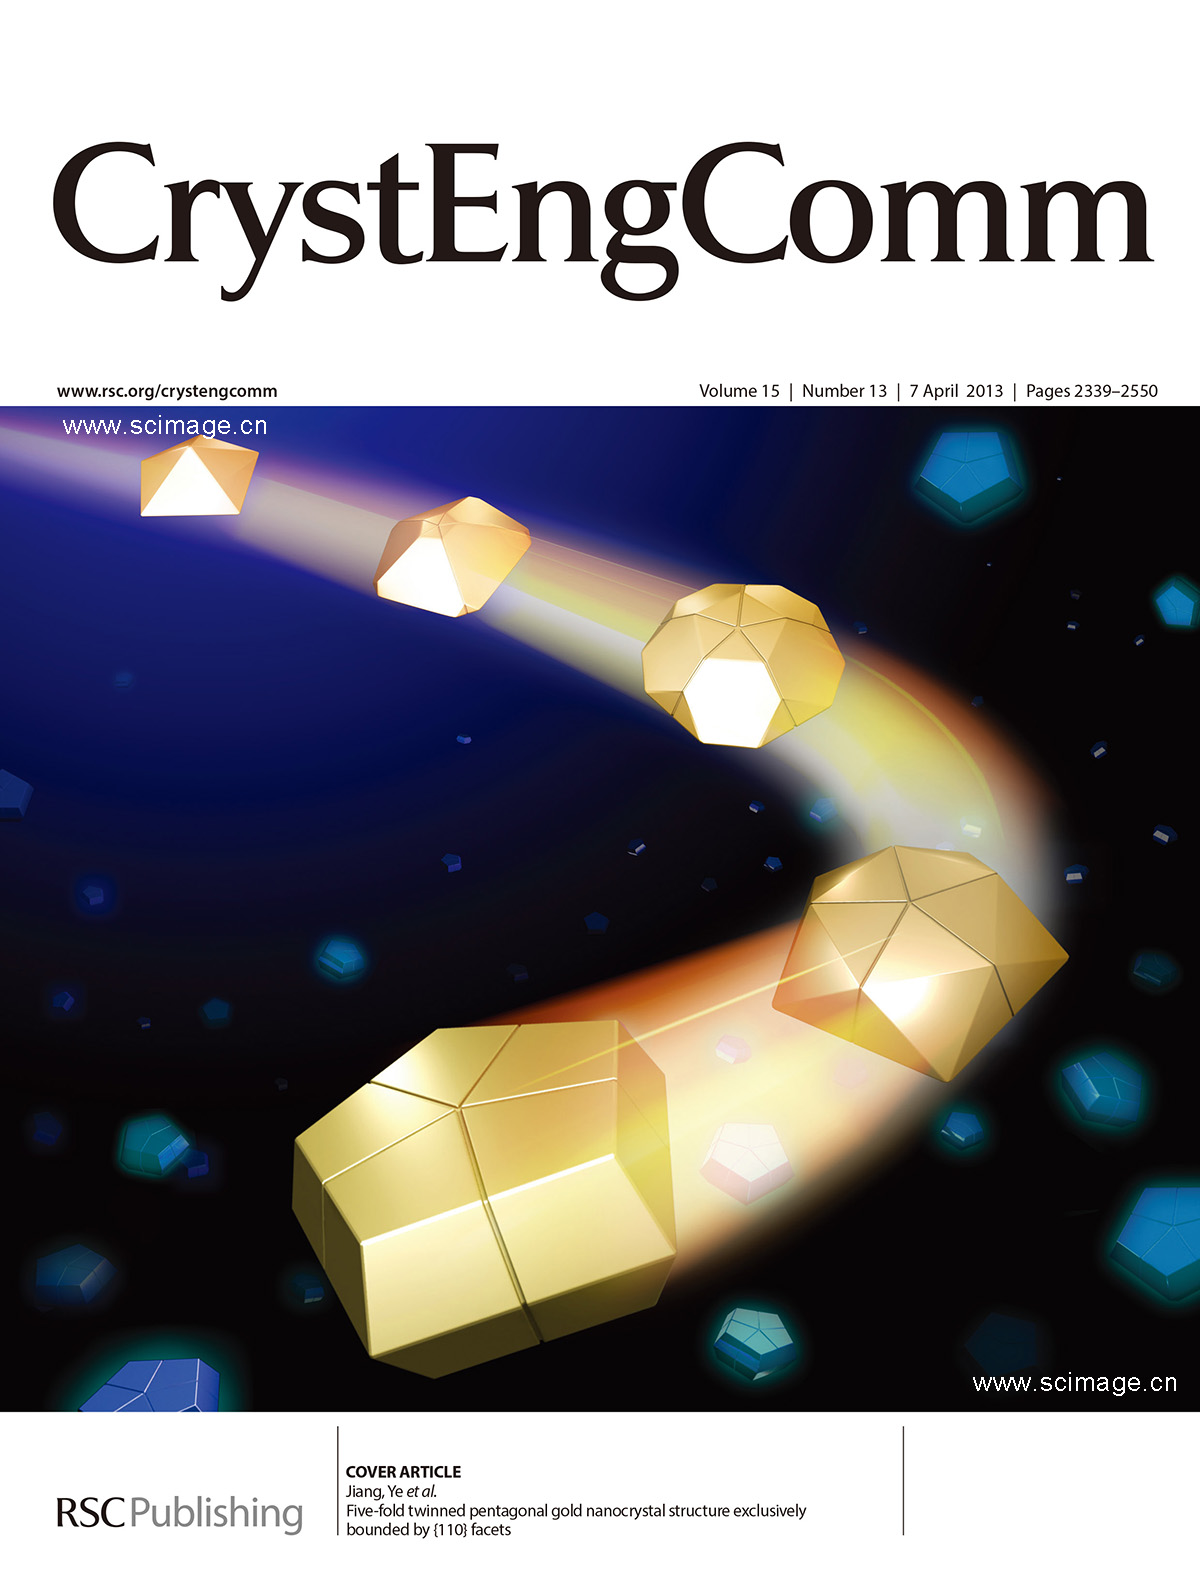 Five-fold twinned pentagonal gold nanocrystal structure exclusively bounded by {110} facets